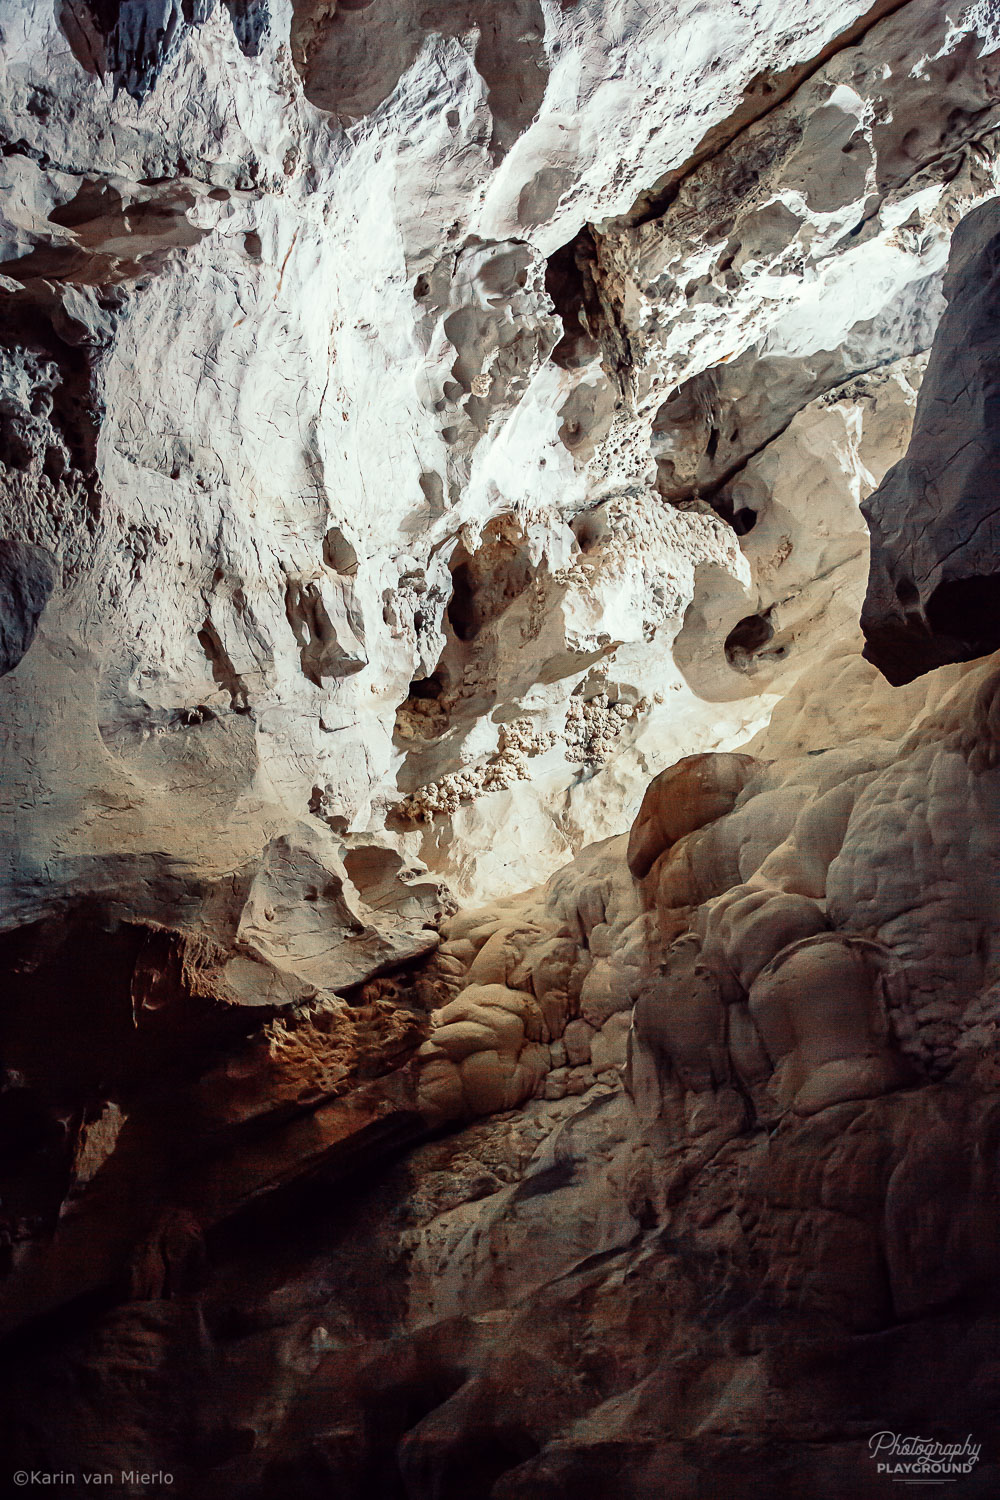 raw vs JPEG, shooting in raw | Photo: Corbeddu Cave, Sardinia, Italy | Copyright Karin van Mierlo, Photography Playground